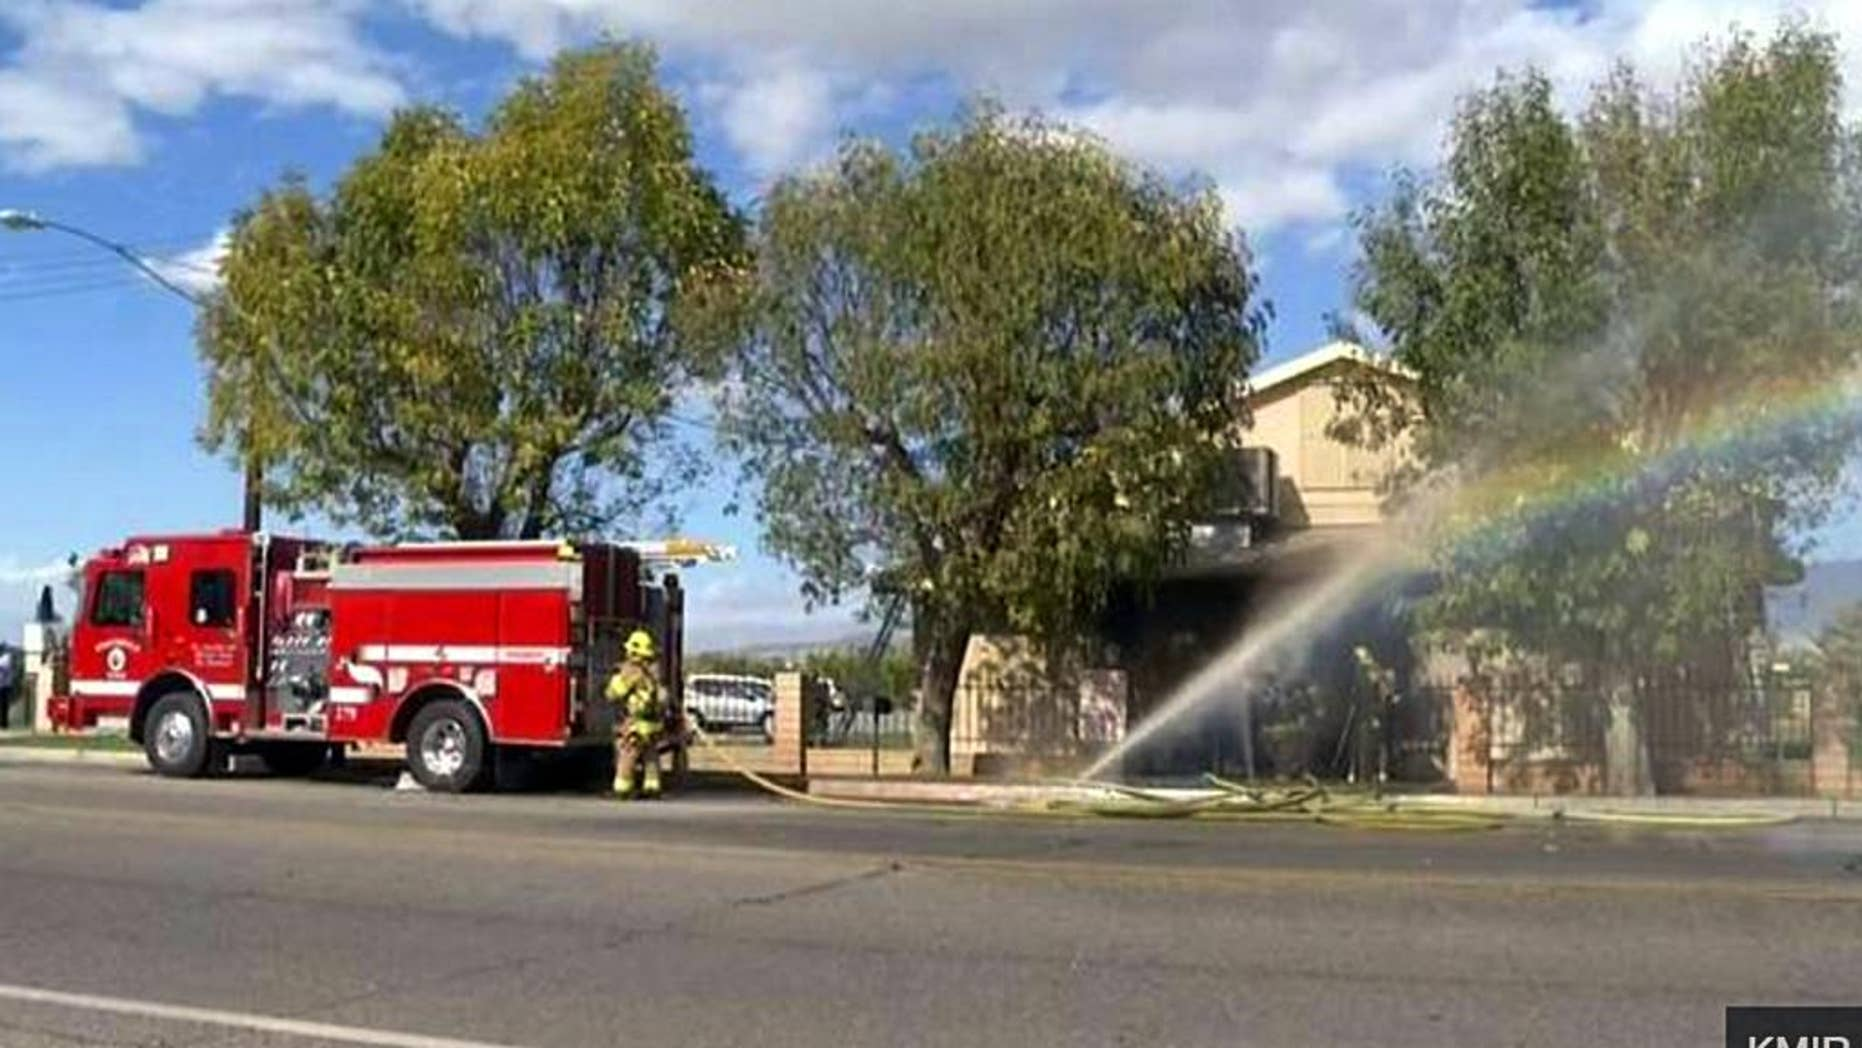 In this image made from video provided by KMIR-TV, firefighters battle flames at the Islamic Center of Palm Springs, a mosque in Coachella, Calif., just east of Palm Springs, early Friday, Dec. 11, 2015. The fire was contained to the small building's front lobby, and no one was injured. Its cause is under investigation. (KMIR-TV via AP) TV OUT. MANDATORY CREDIT